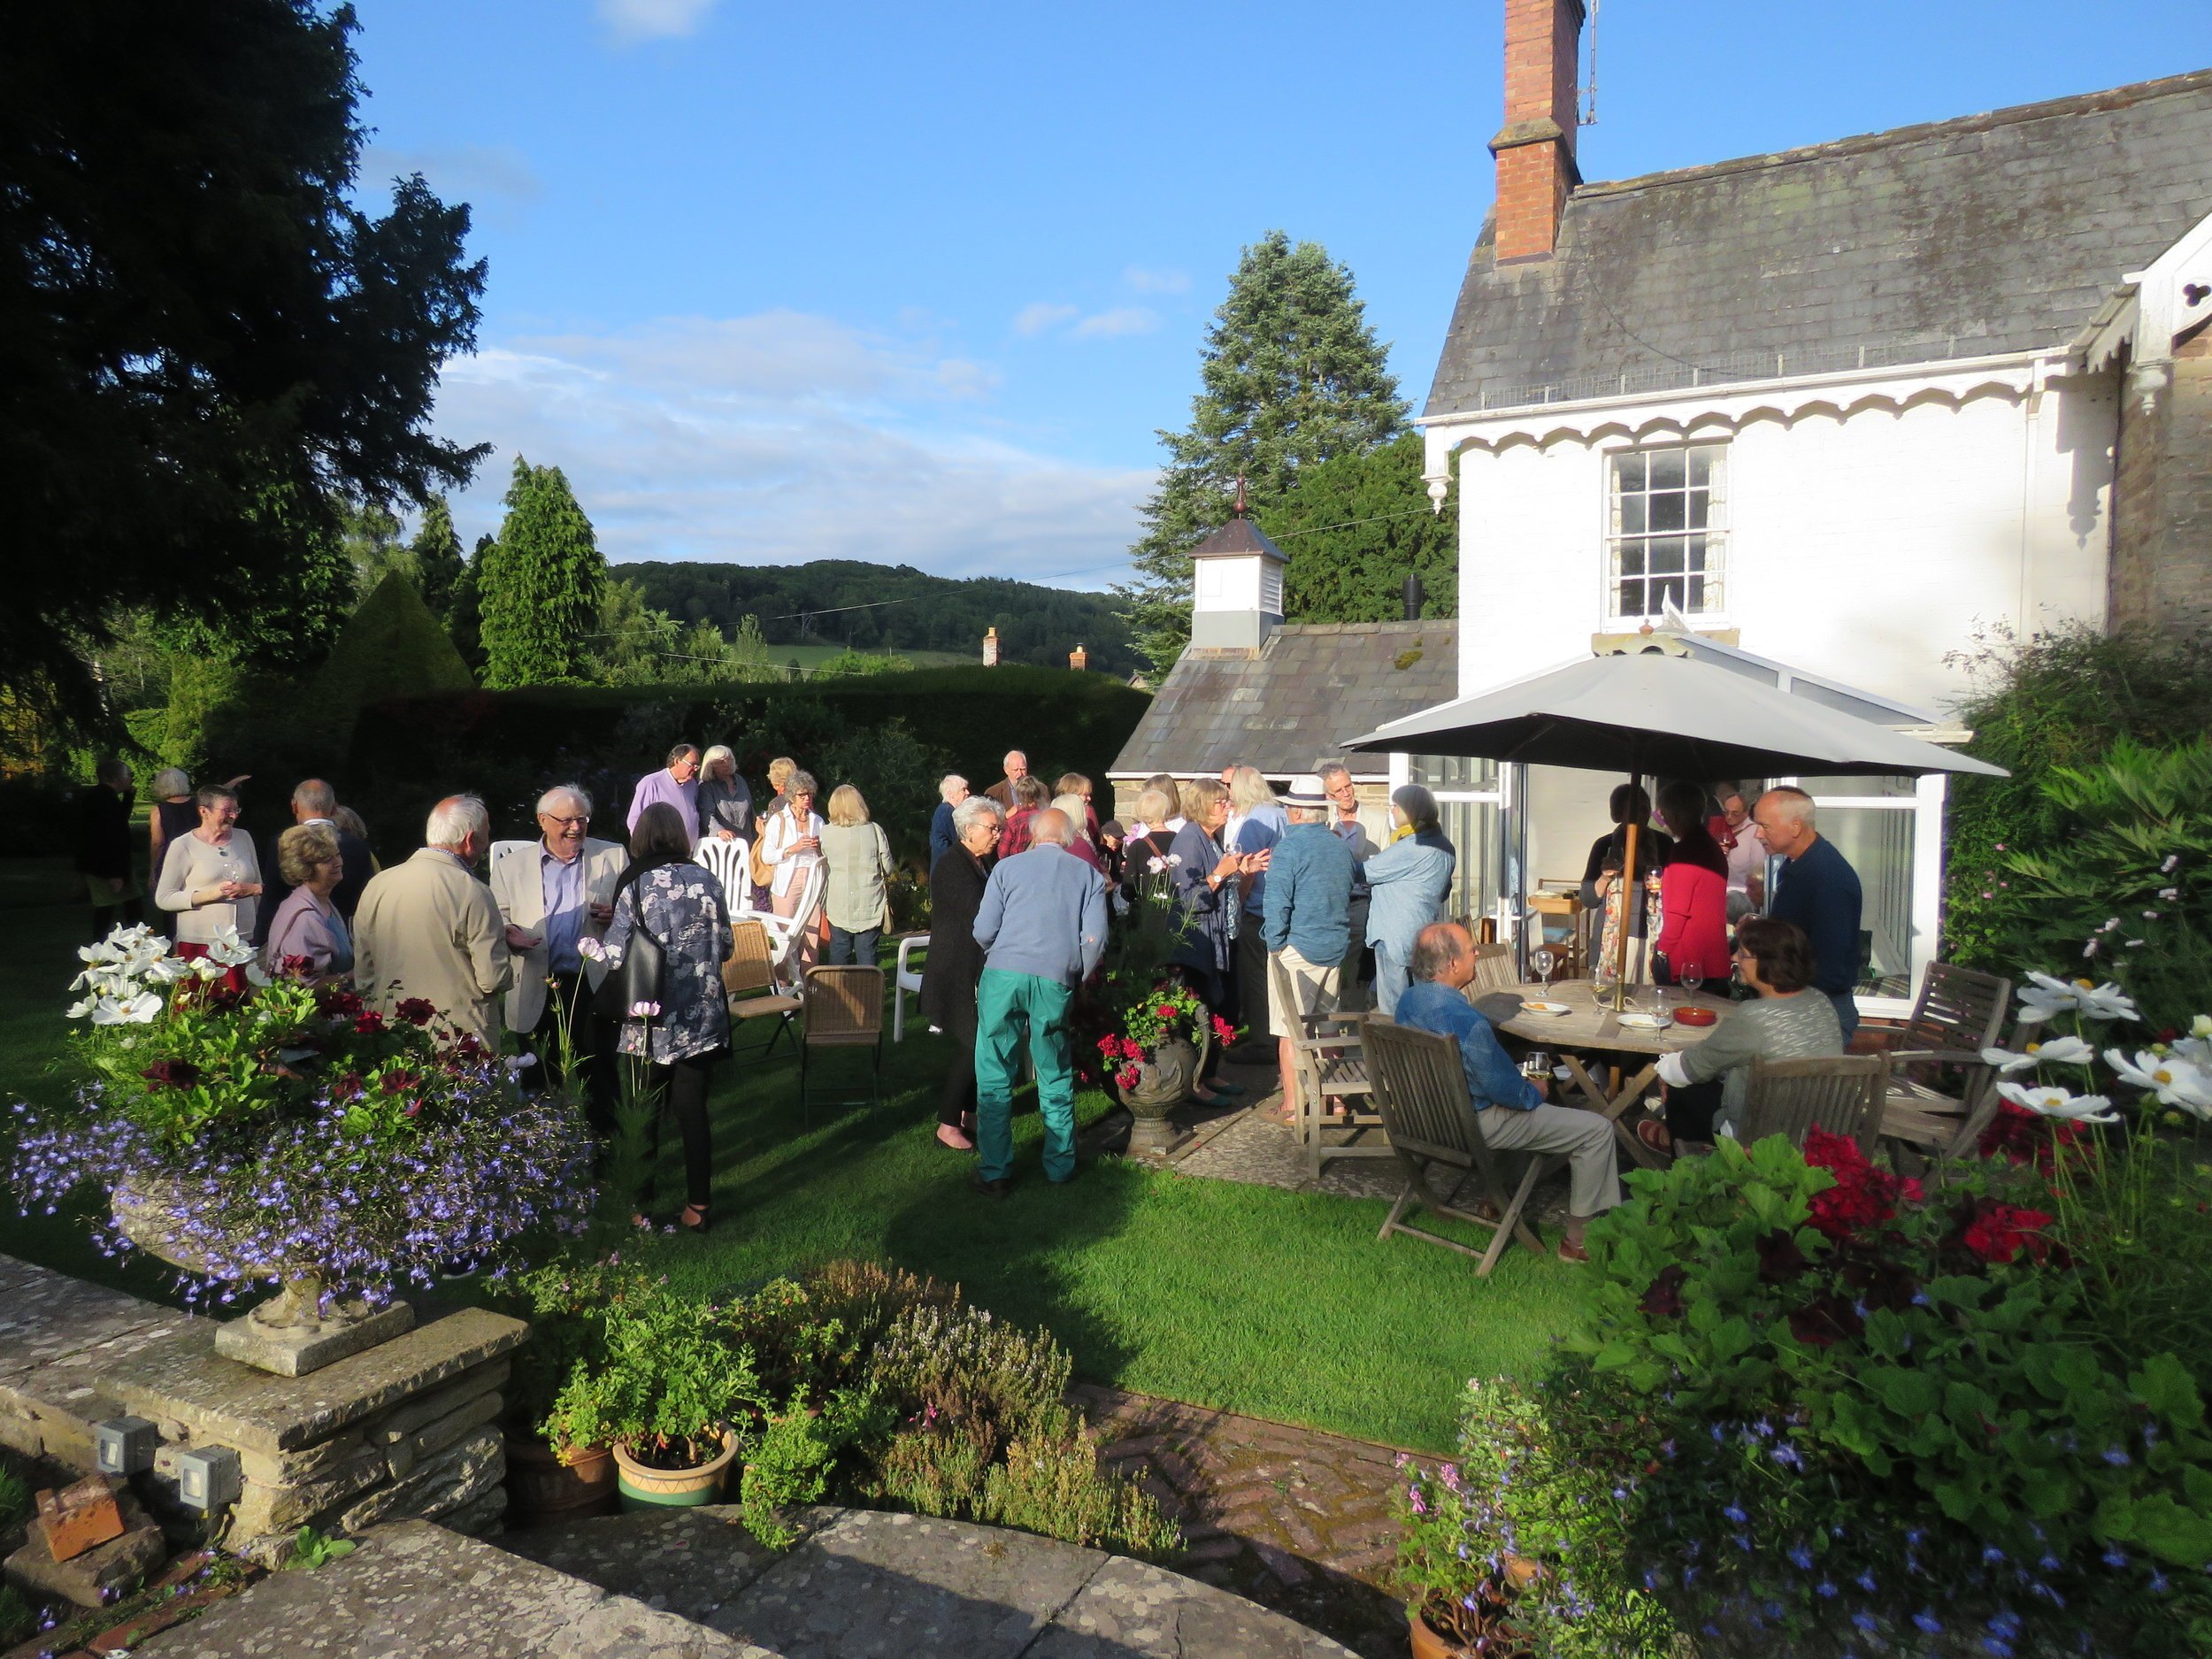 Members of the audience enjoying a glass of wine in the garden at Dorstone House after 'Private Passions'